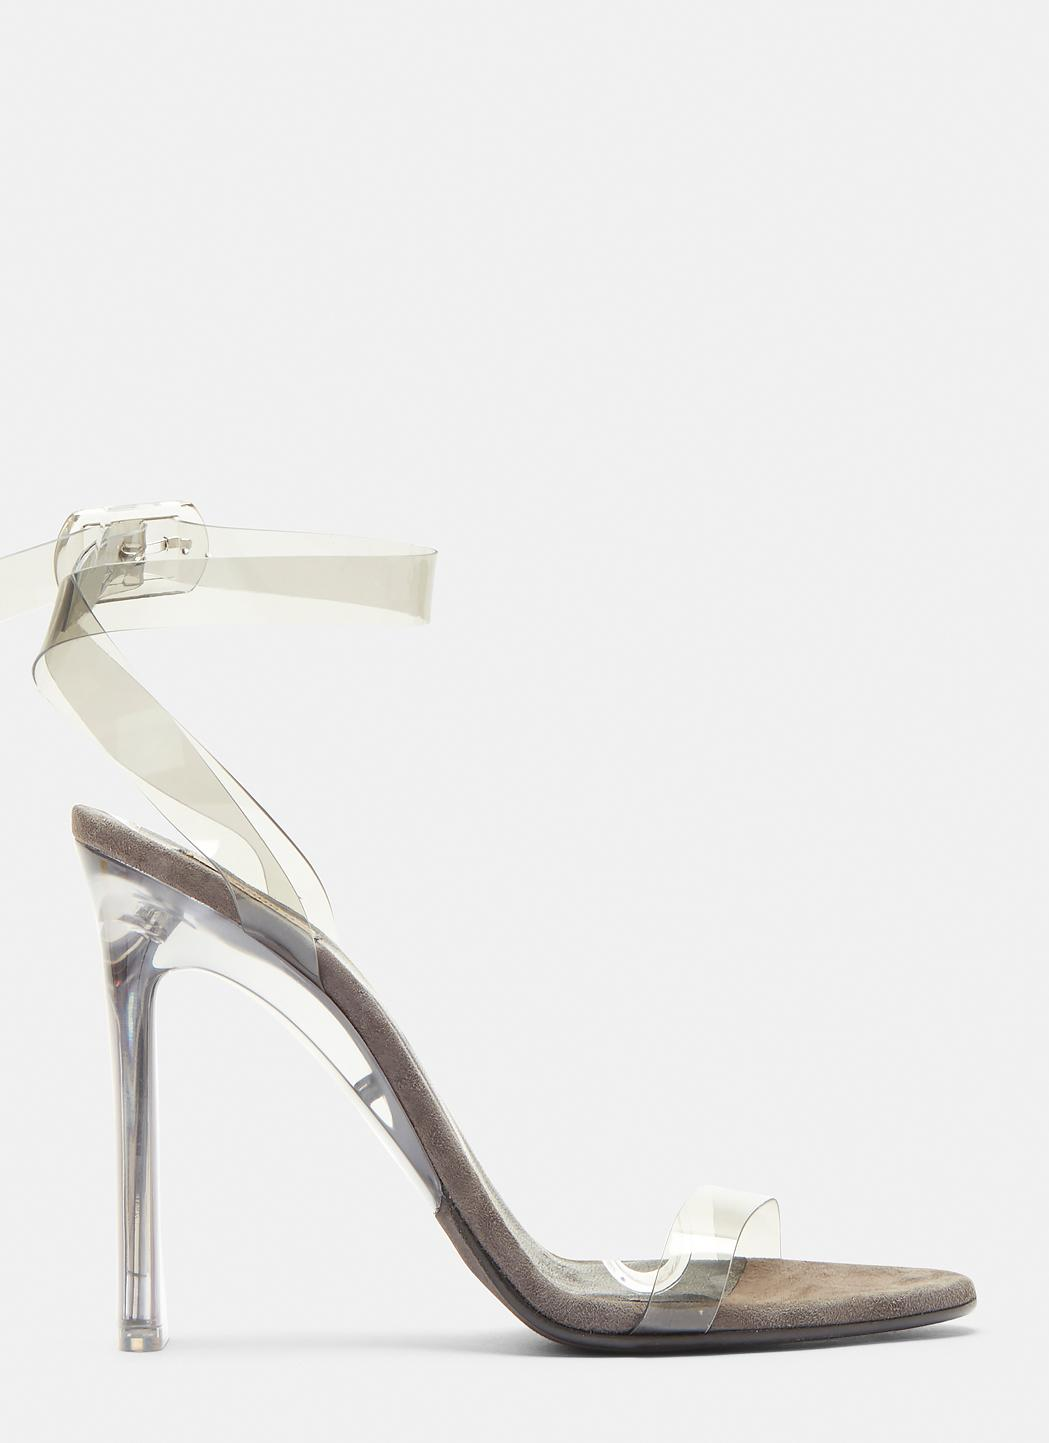 Yeezy PVC Ankle Strap Sandal 110mm Heel UeZ128NS4P